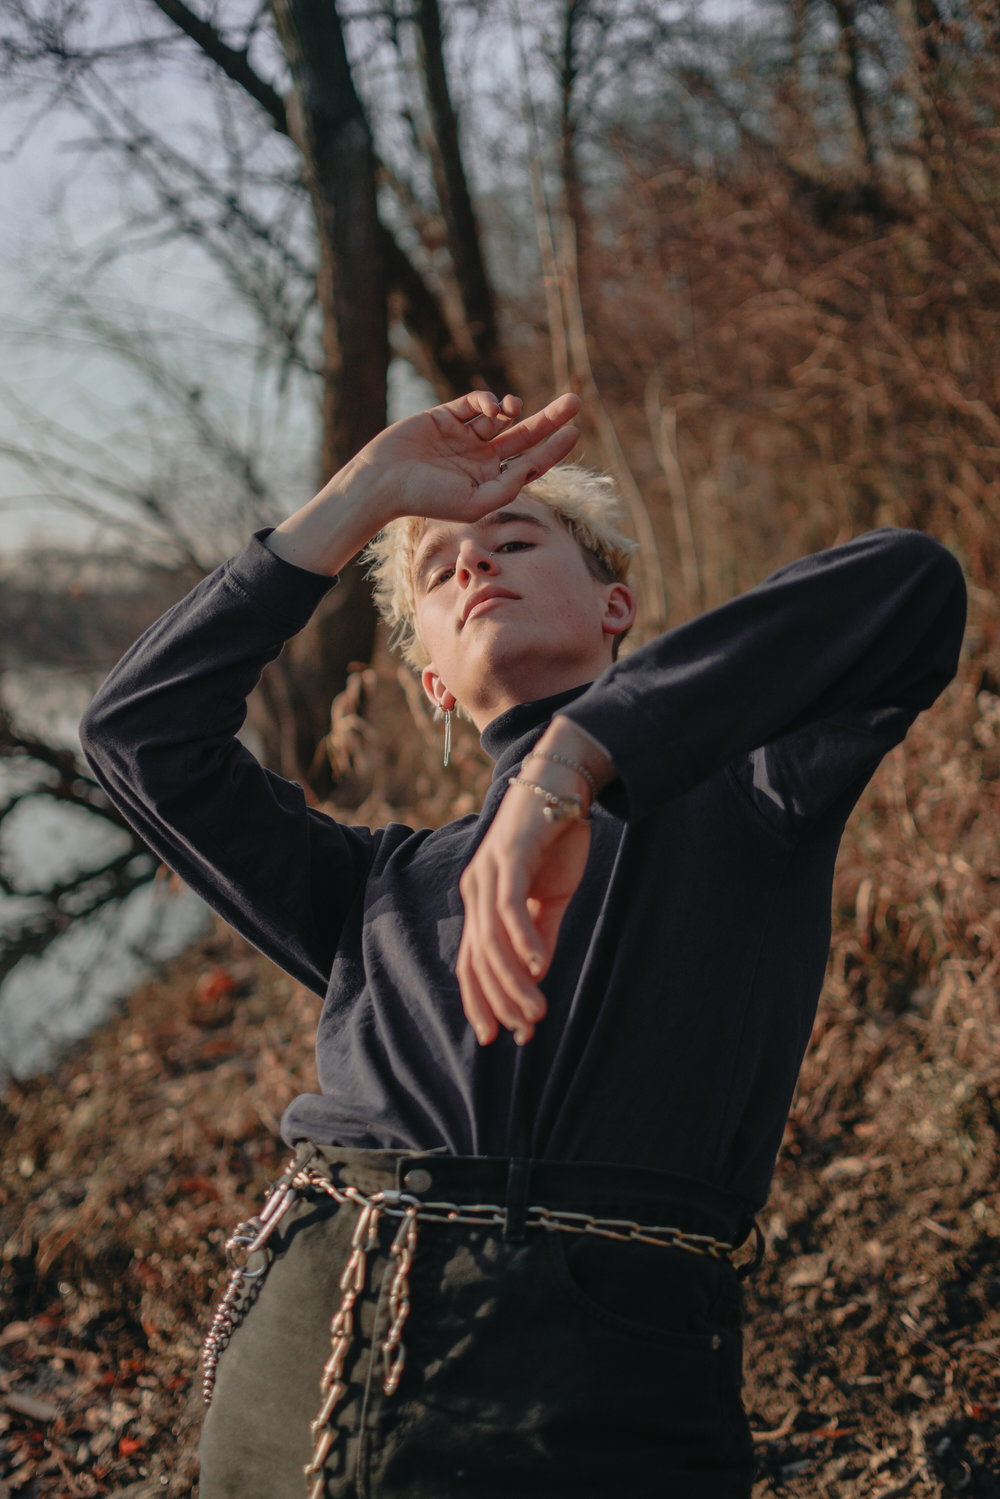 Alexander Knepley (alsotakephotos) - Alexander Knepley is an 18 year old artist in northwest ohio. Currently attending CCS in detroit for a degree in fine art. Photo by Jordyn Belli (@sleepykiwis)